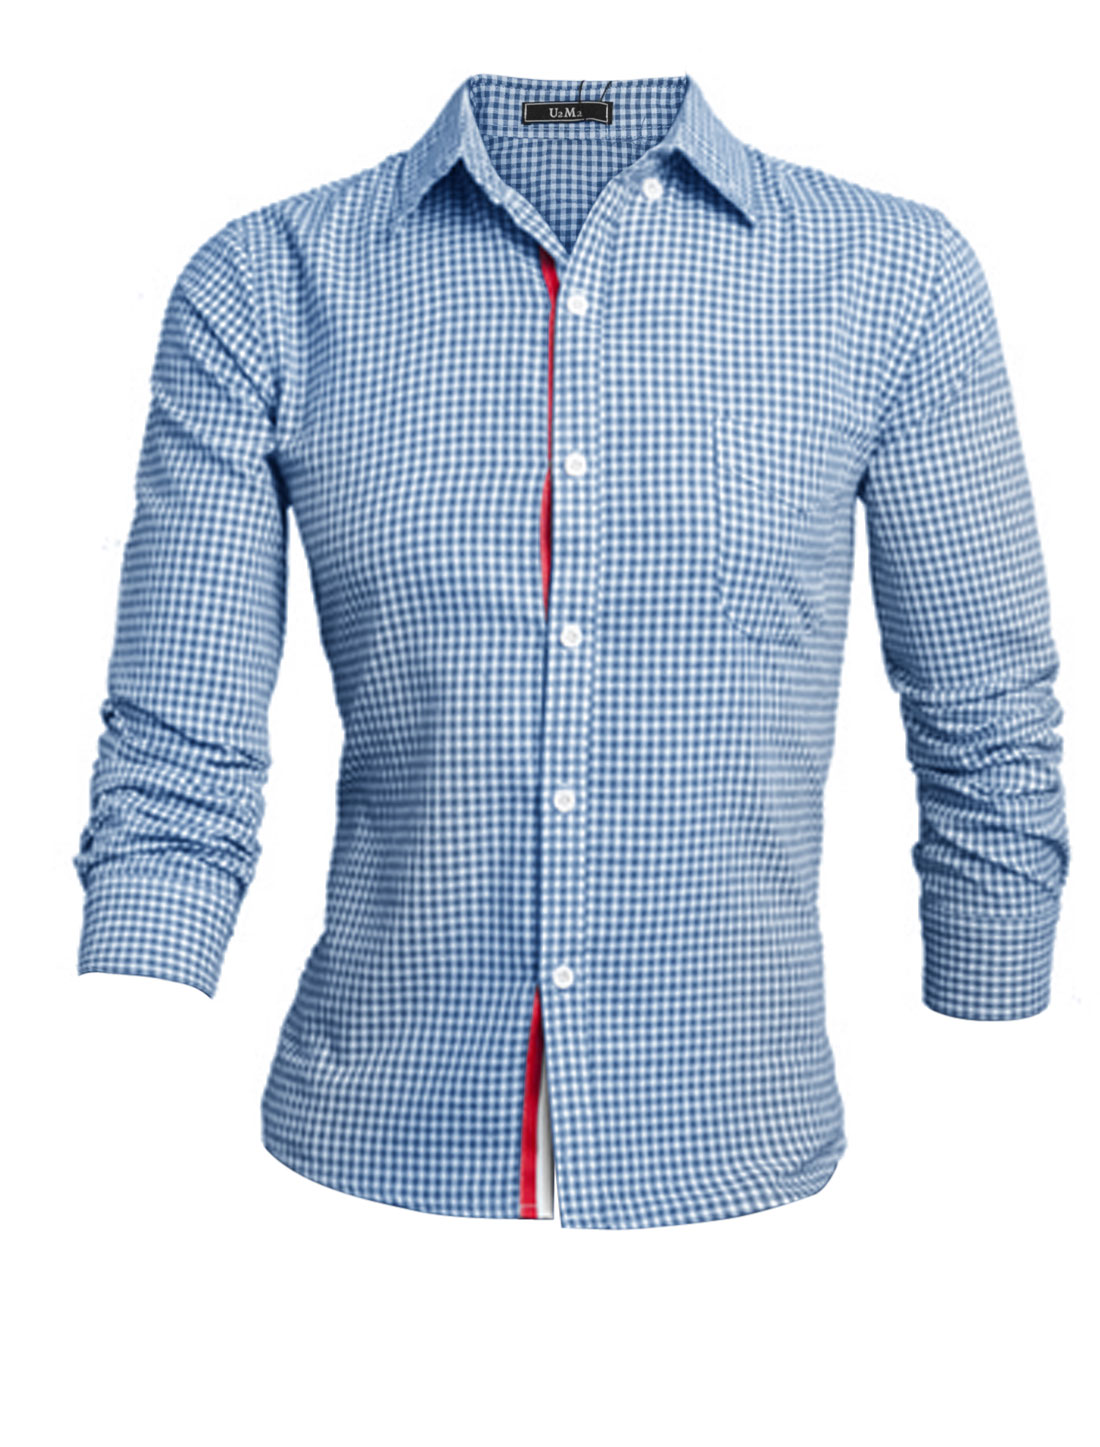 Men Blue White Long Sleeves Point Collar Single Breasted One Bust Pocket Shirt M